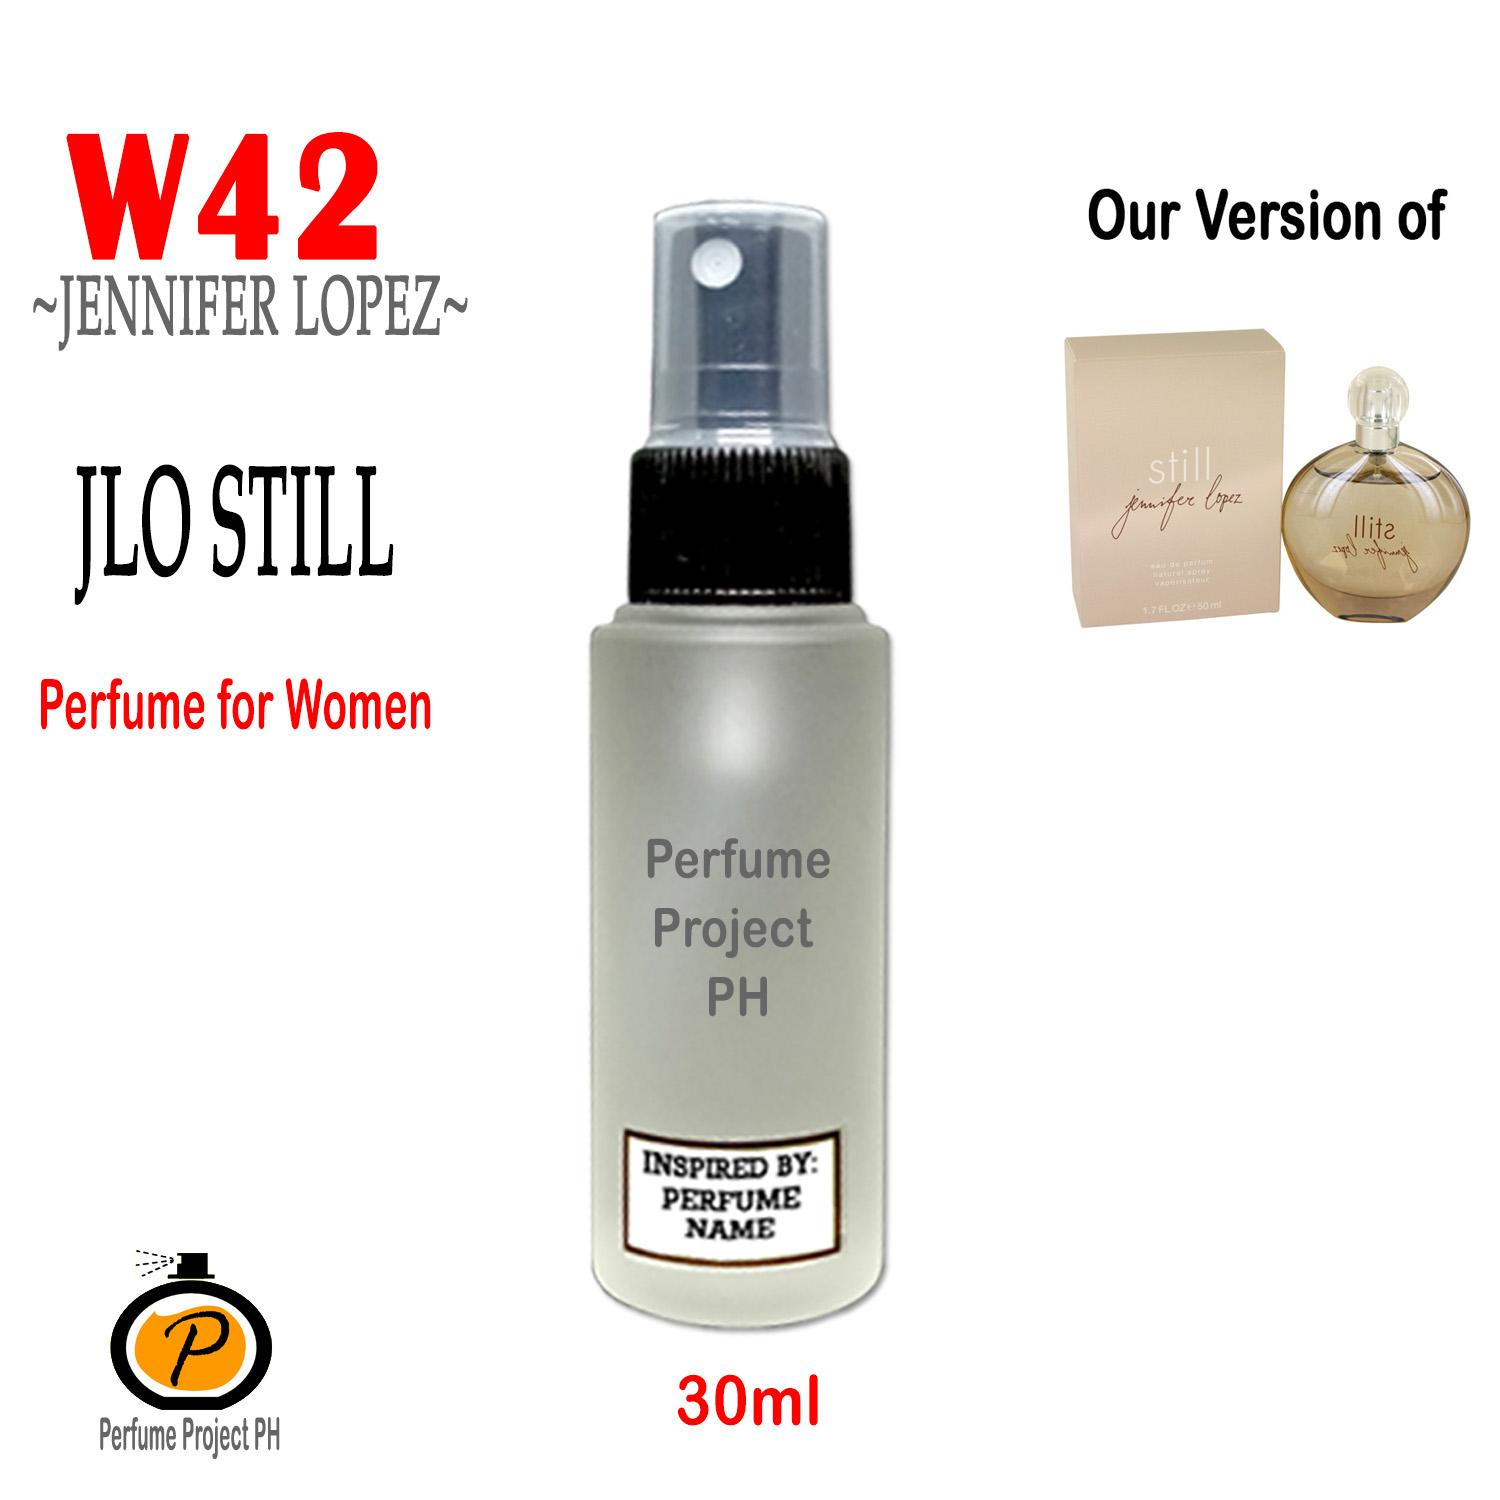 PERFUME PROJECT PH (30ml Round) W42 our version of JLO Still by Jennifer Lopez